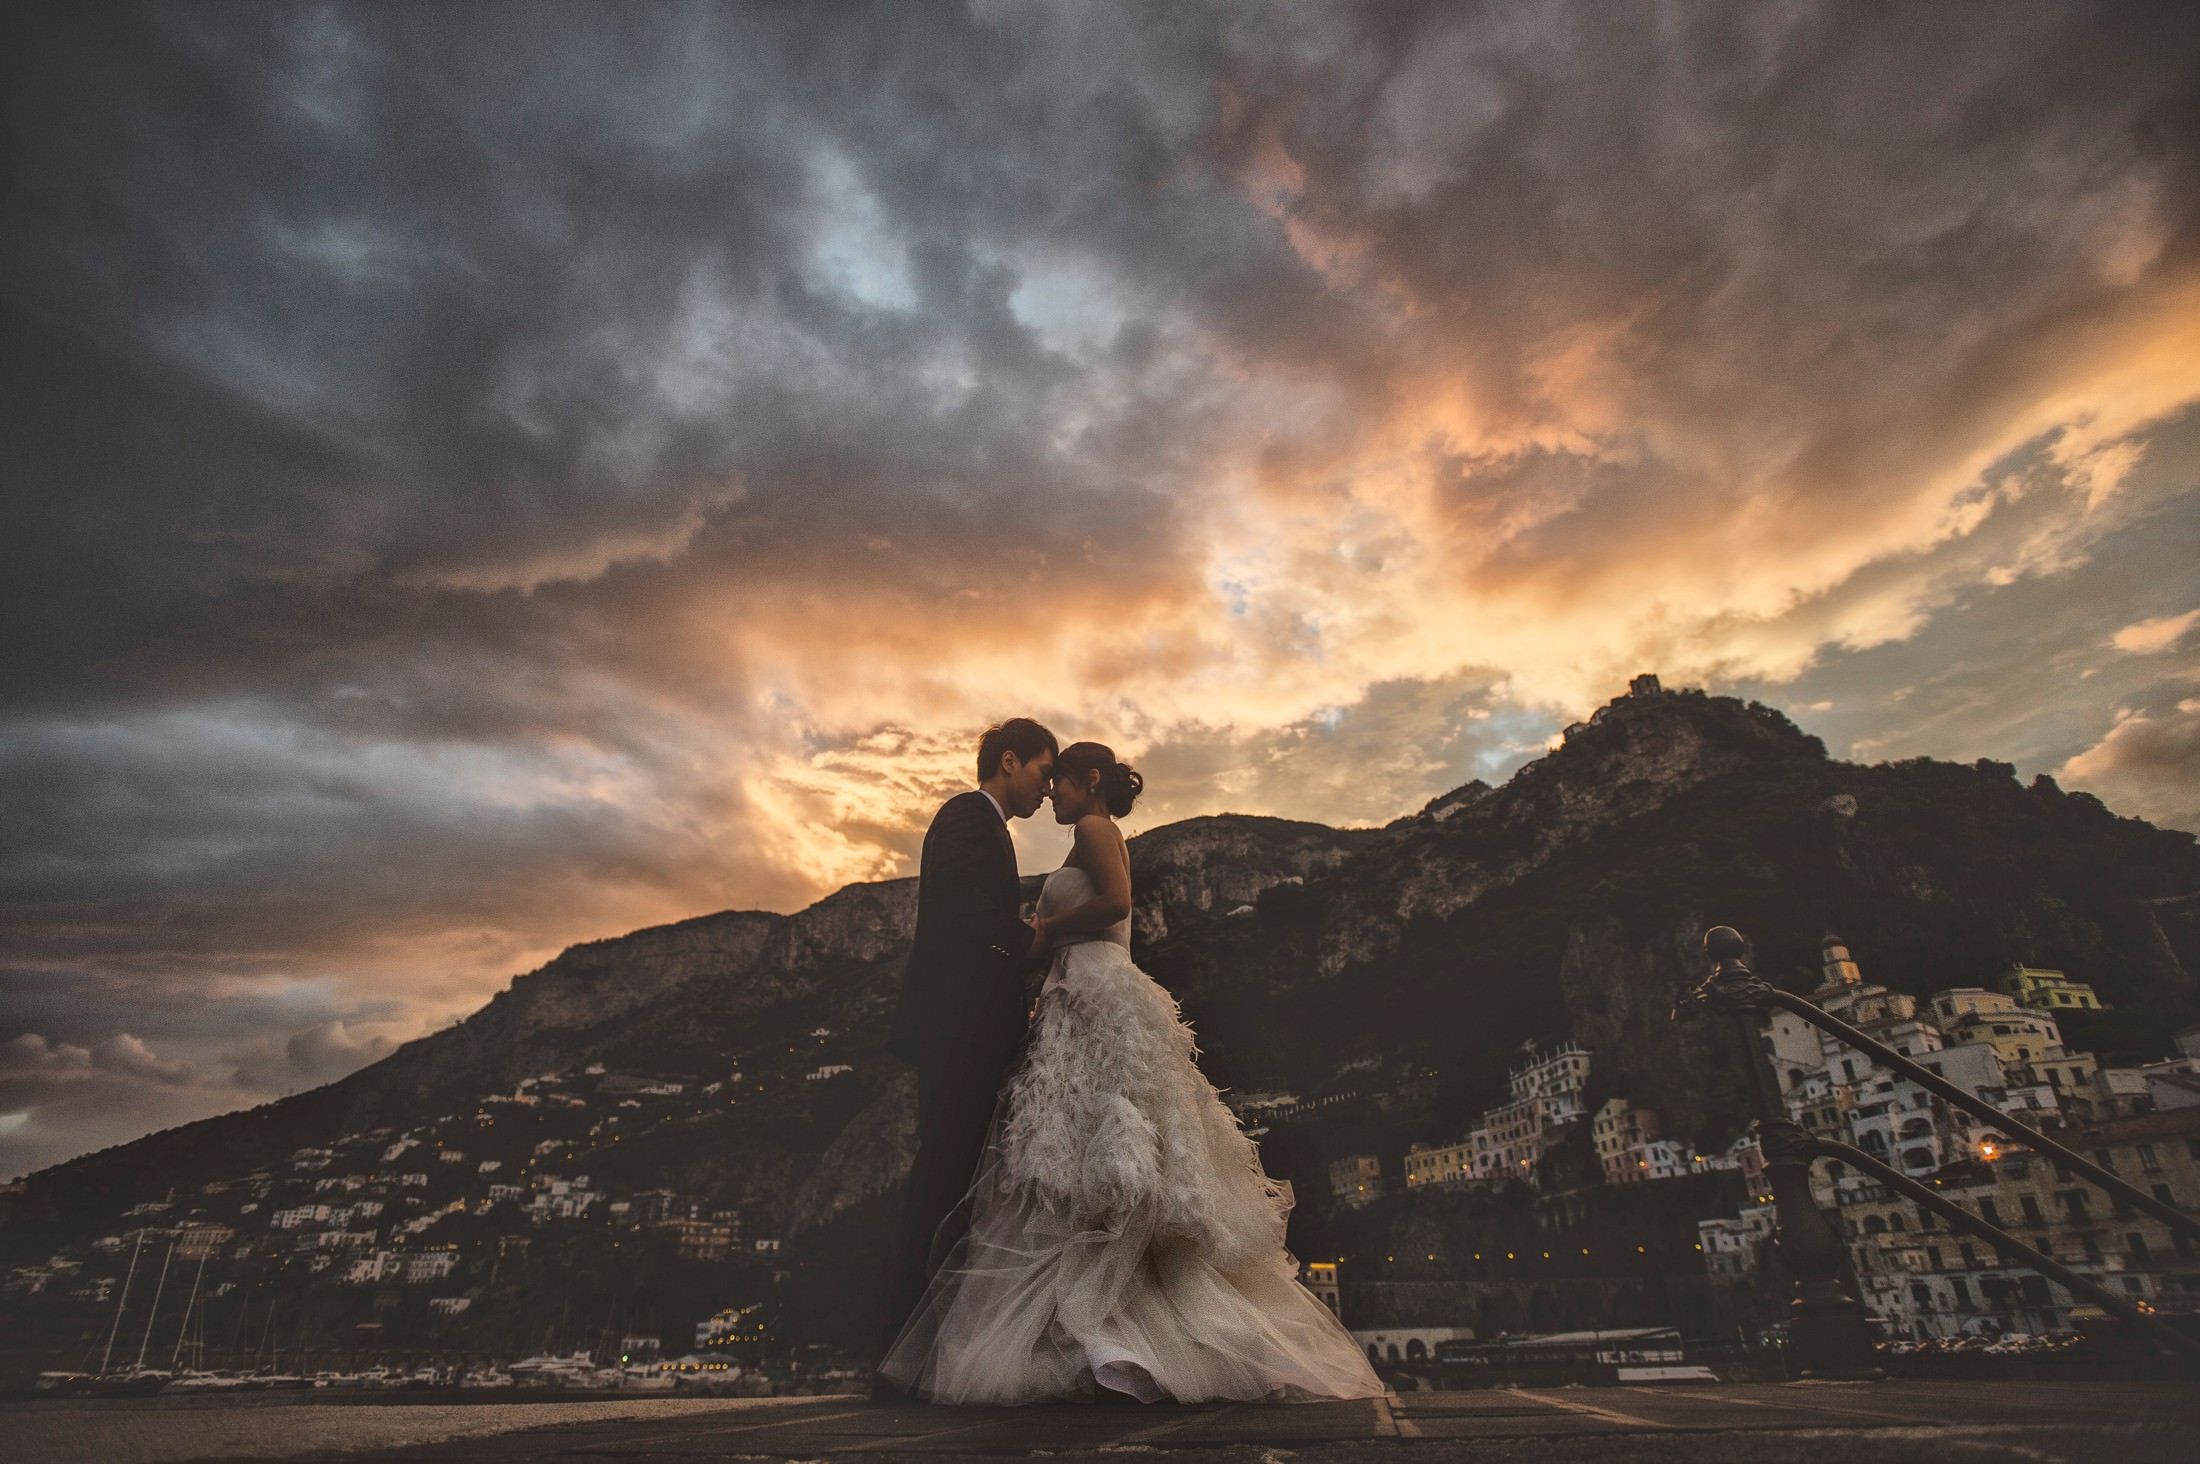 gianni di natale bride and groom's portrait at sunset time